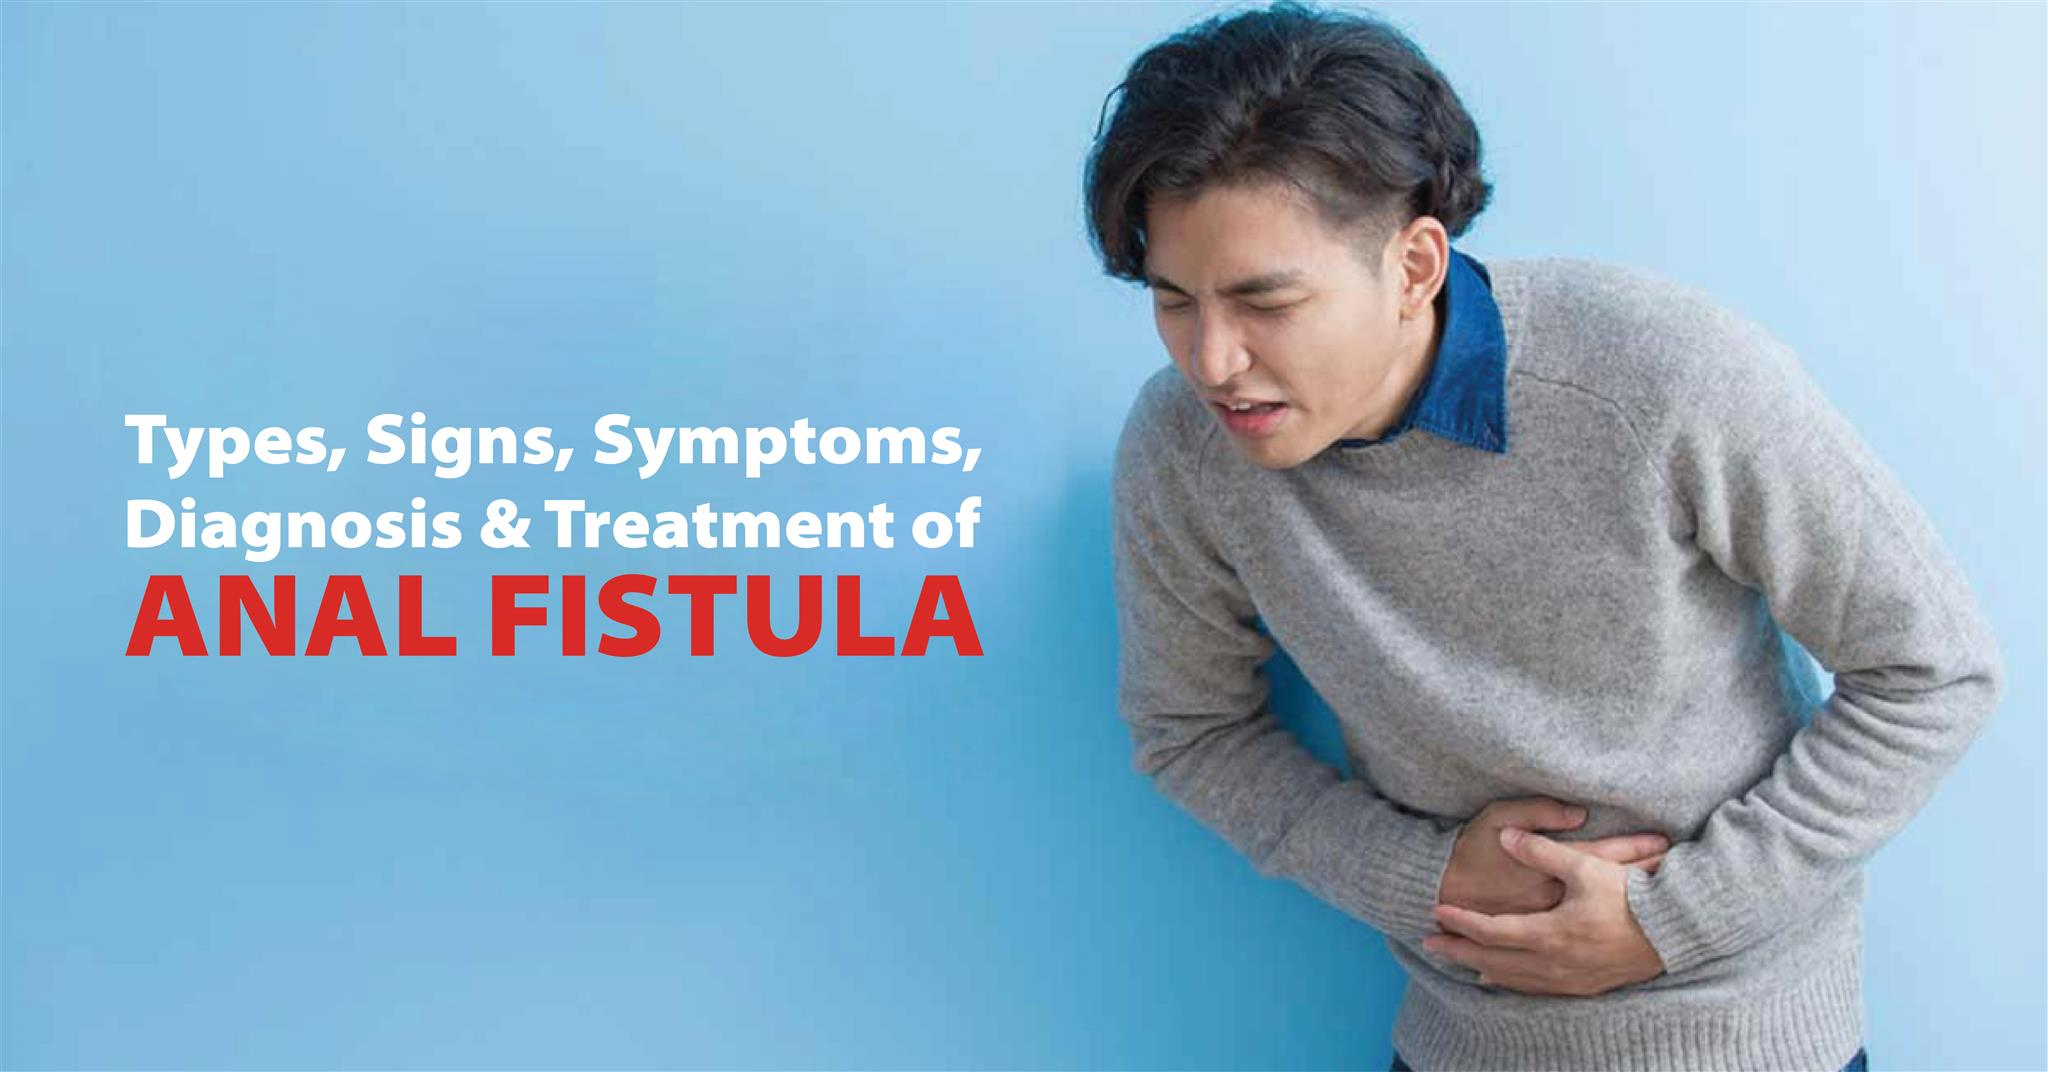 Types, Signs, Symptoms, Diagnosis & Treatment of Anal Fistula